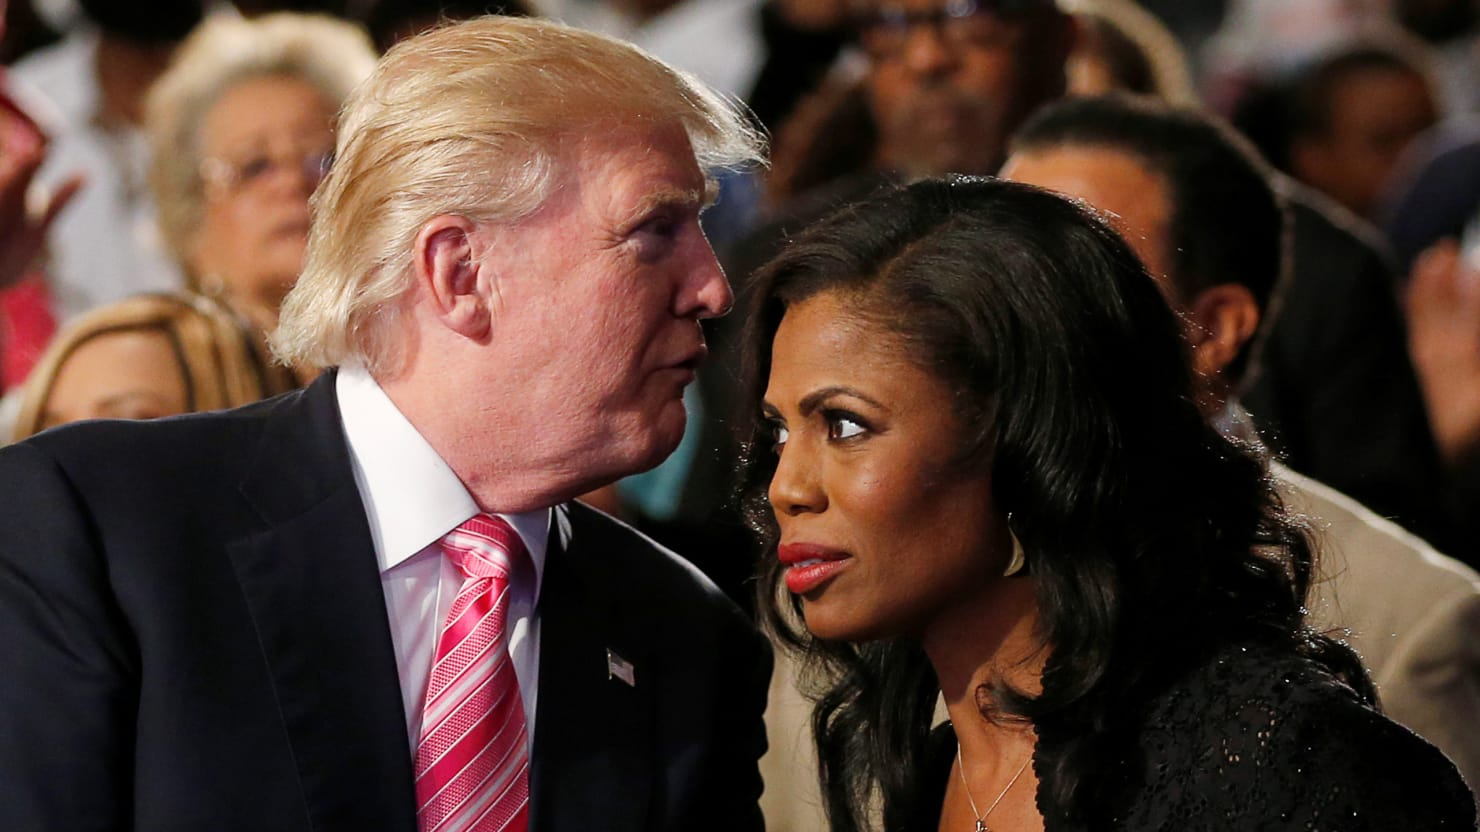 Omarosa | The Apprentice Wiki | FANDOM powered by Wikia